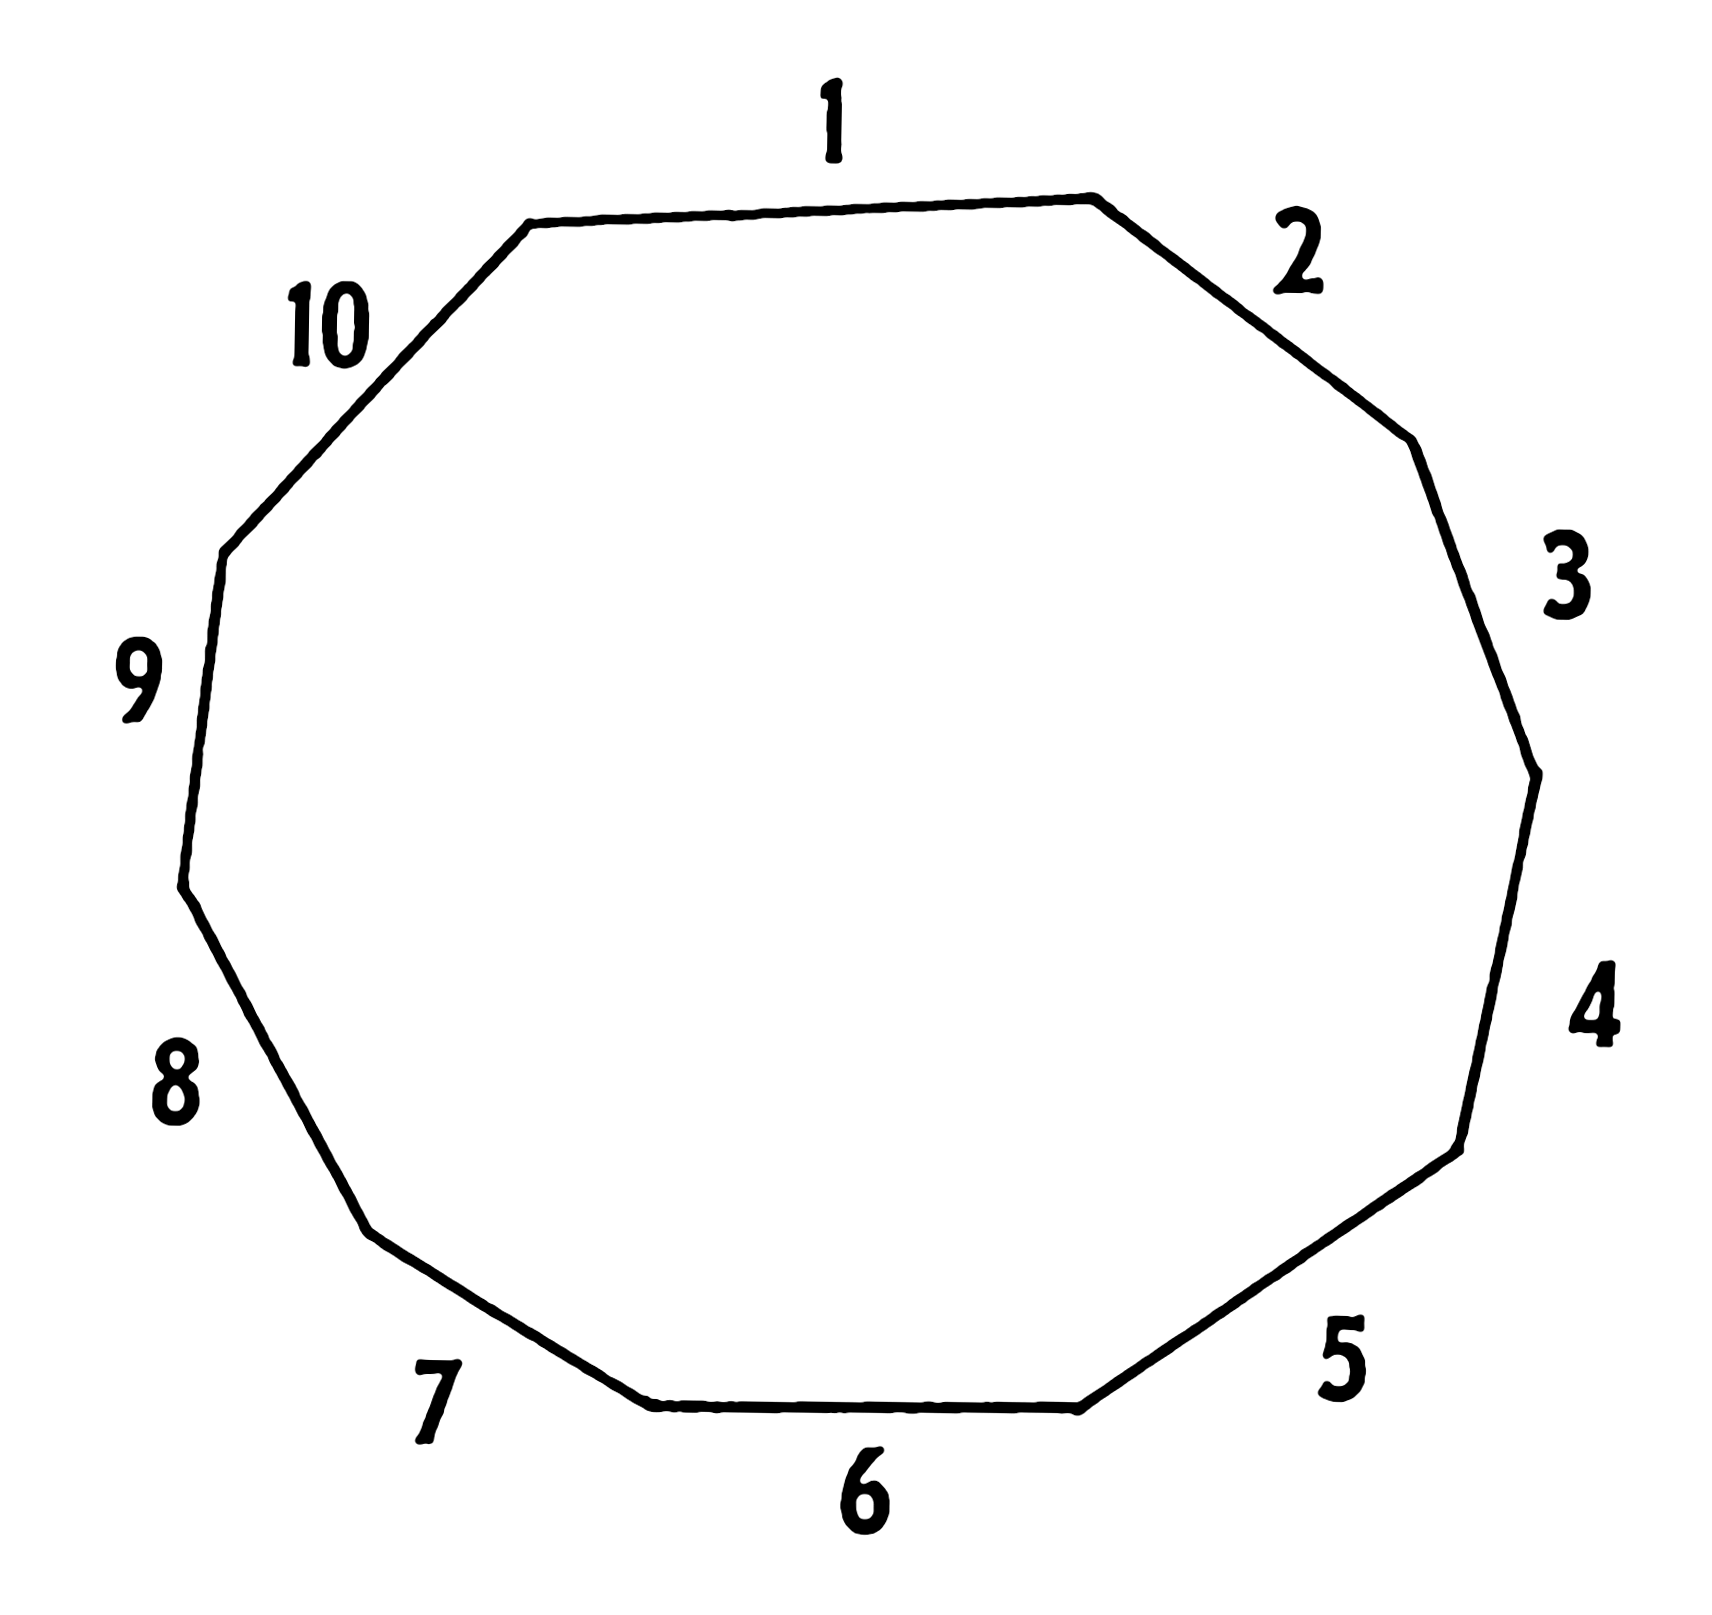 Google images for What is the exterior angle of a regular decagon